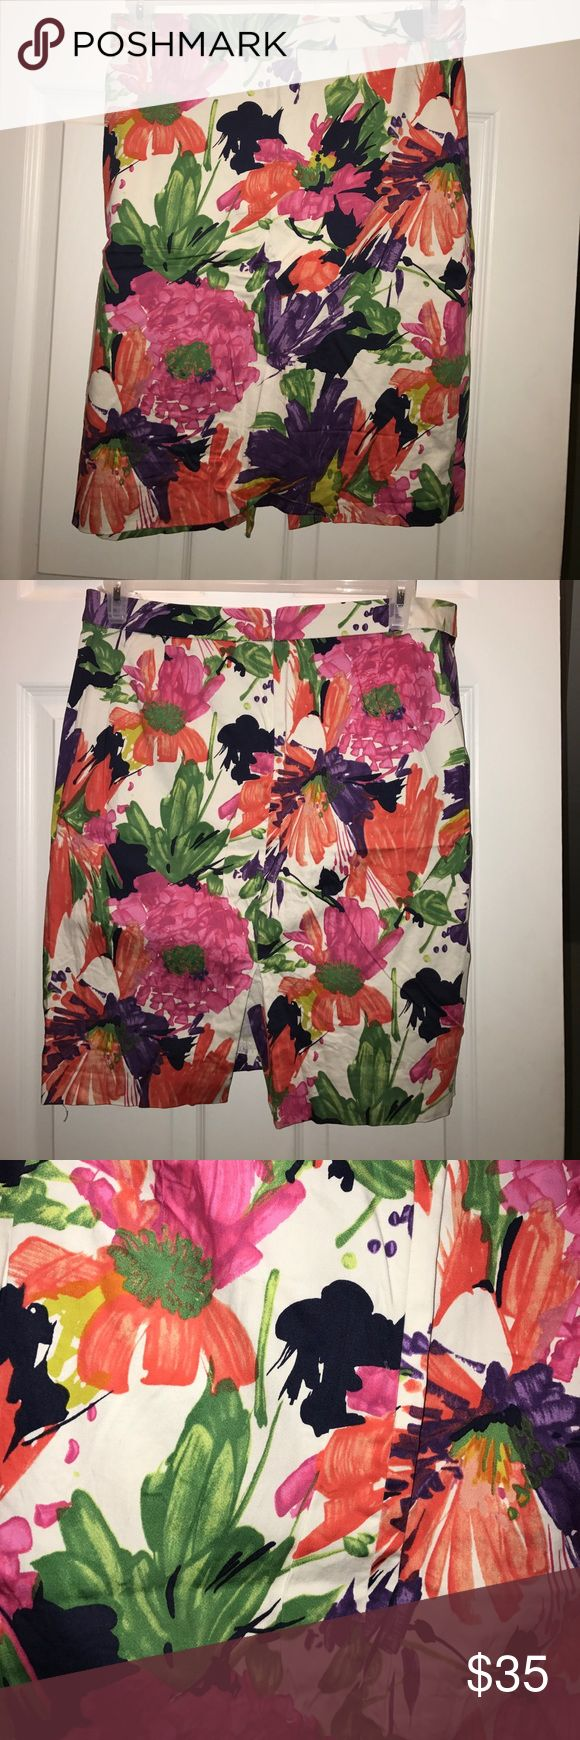 J.Crew floral pencil skirt J. Crew floral pencil skirt. Only worn a few times and in excellent used condition. Size 14. Features a back zipper and slit. Print is gorgeous. Actual J.Crew, this is not an outlet/factory piece. J. Crew Skirts